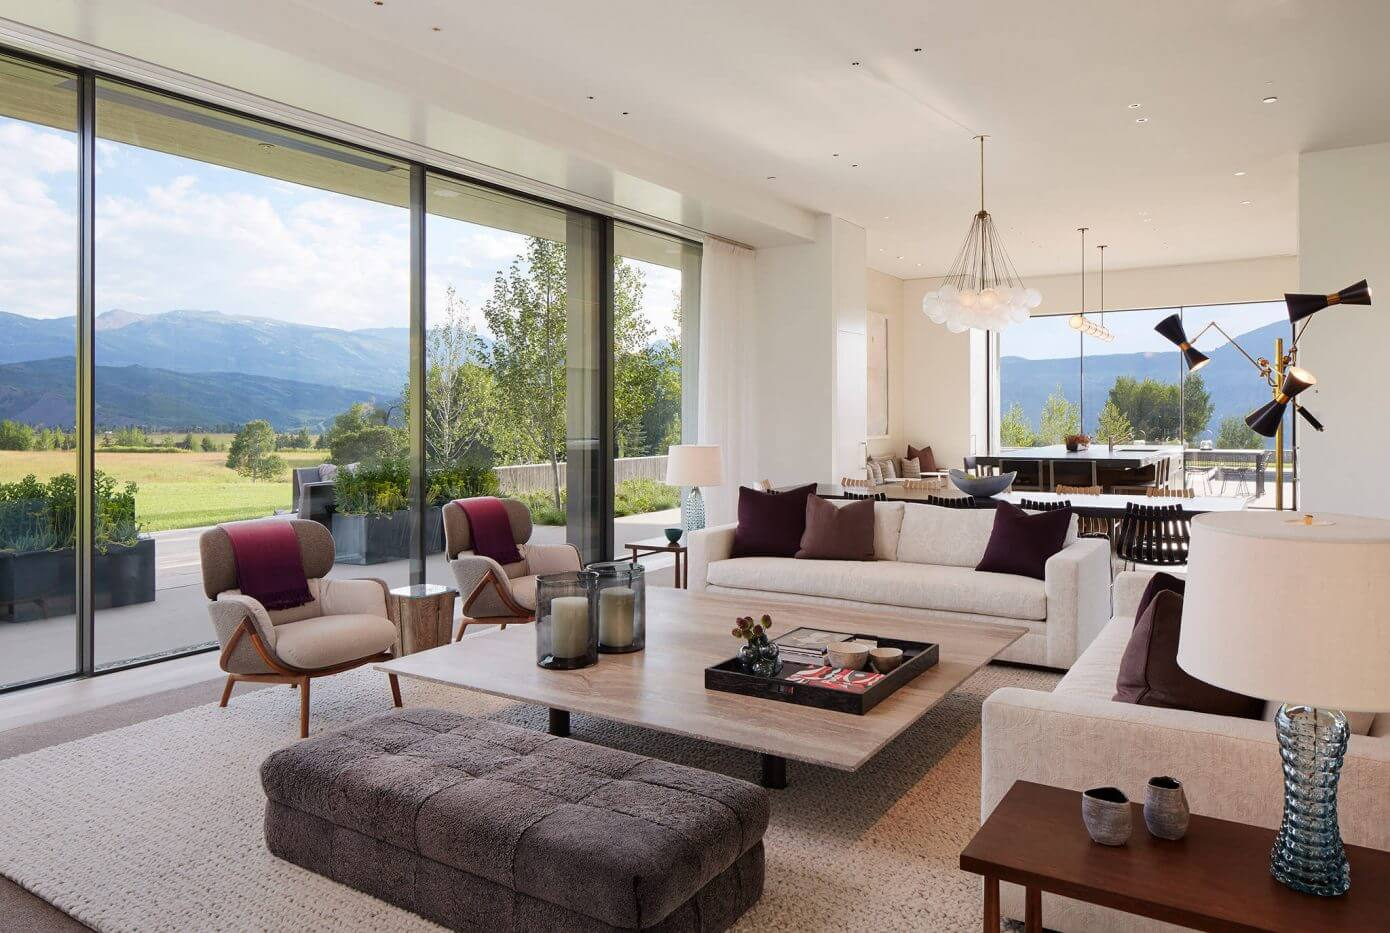 013 Mountain Home Robbins Architecture Homeadore